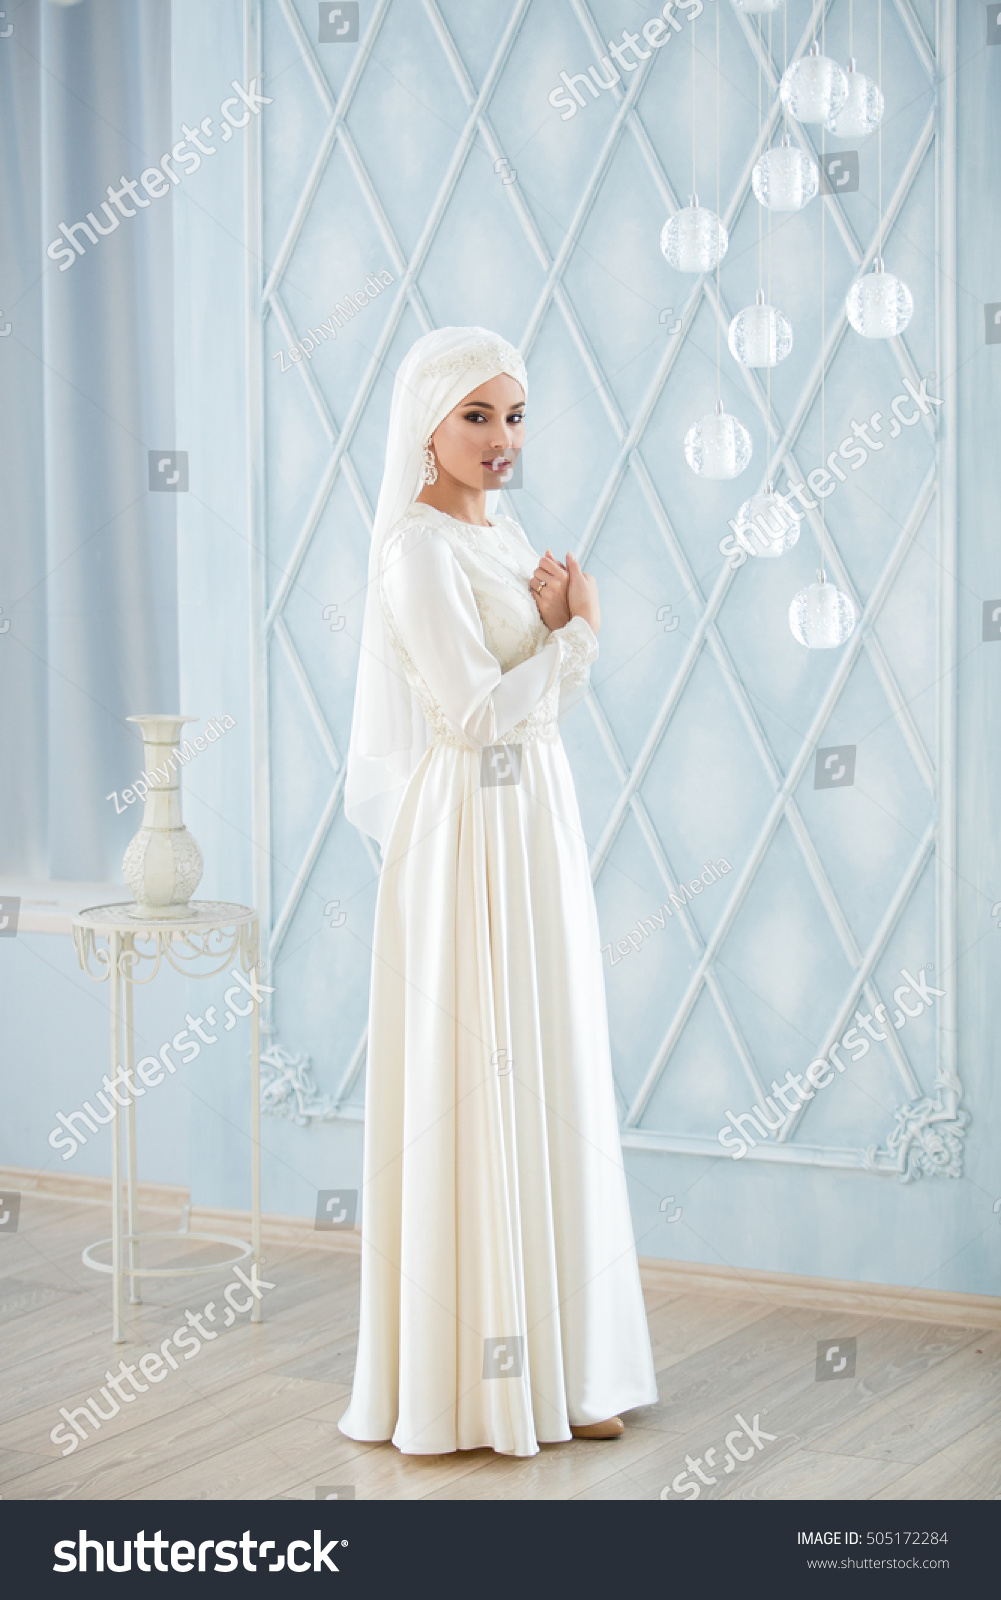 Young Beautiful Bride White Traditional Muslim Stock Photo (Royalty ...